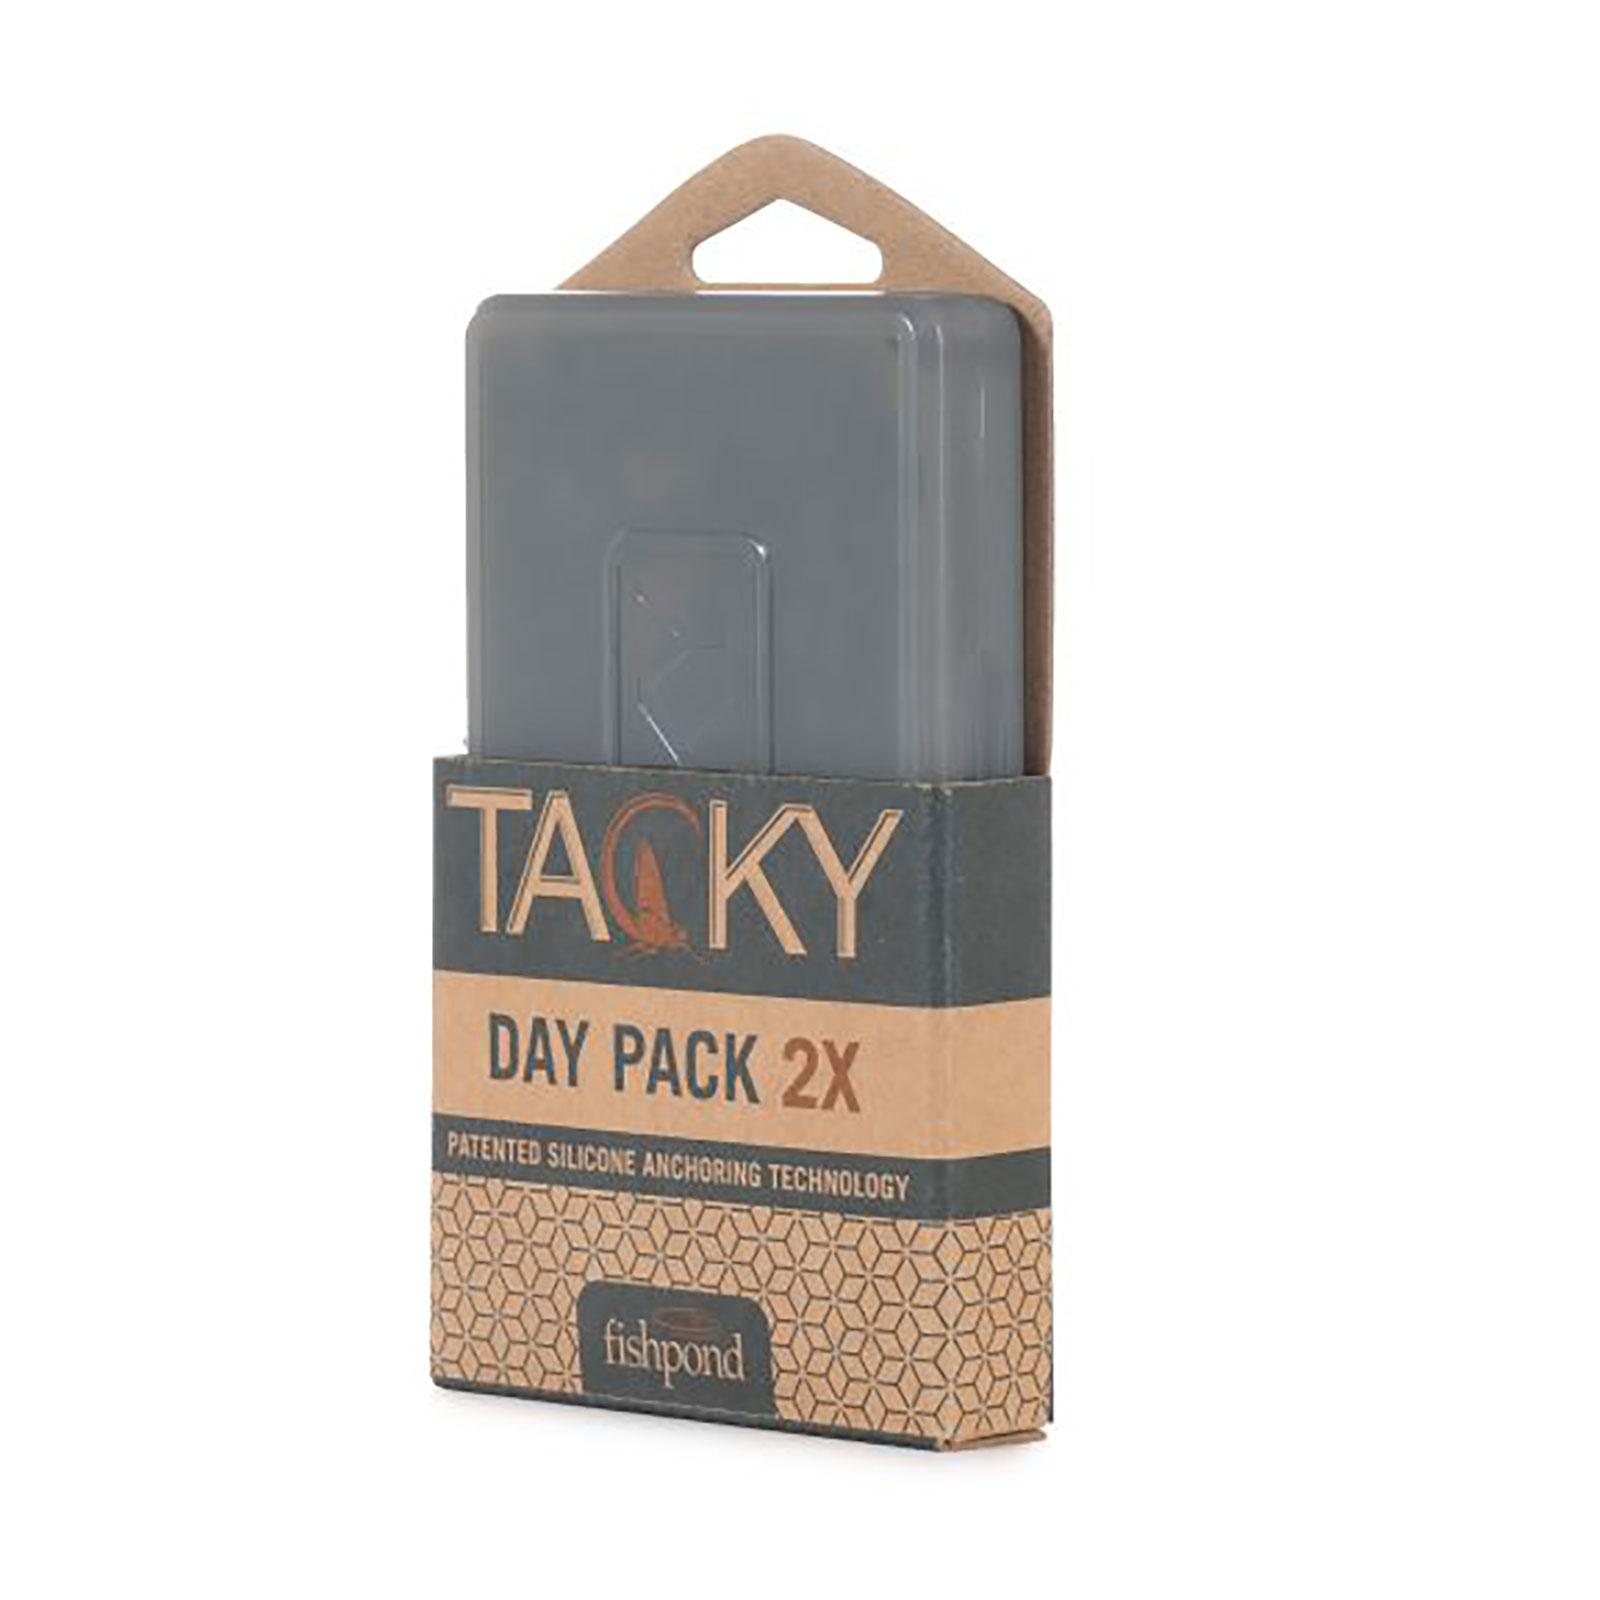 Day Pack Fly Box 2X Package Front